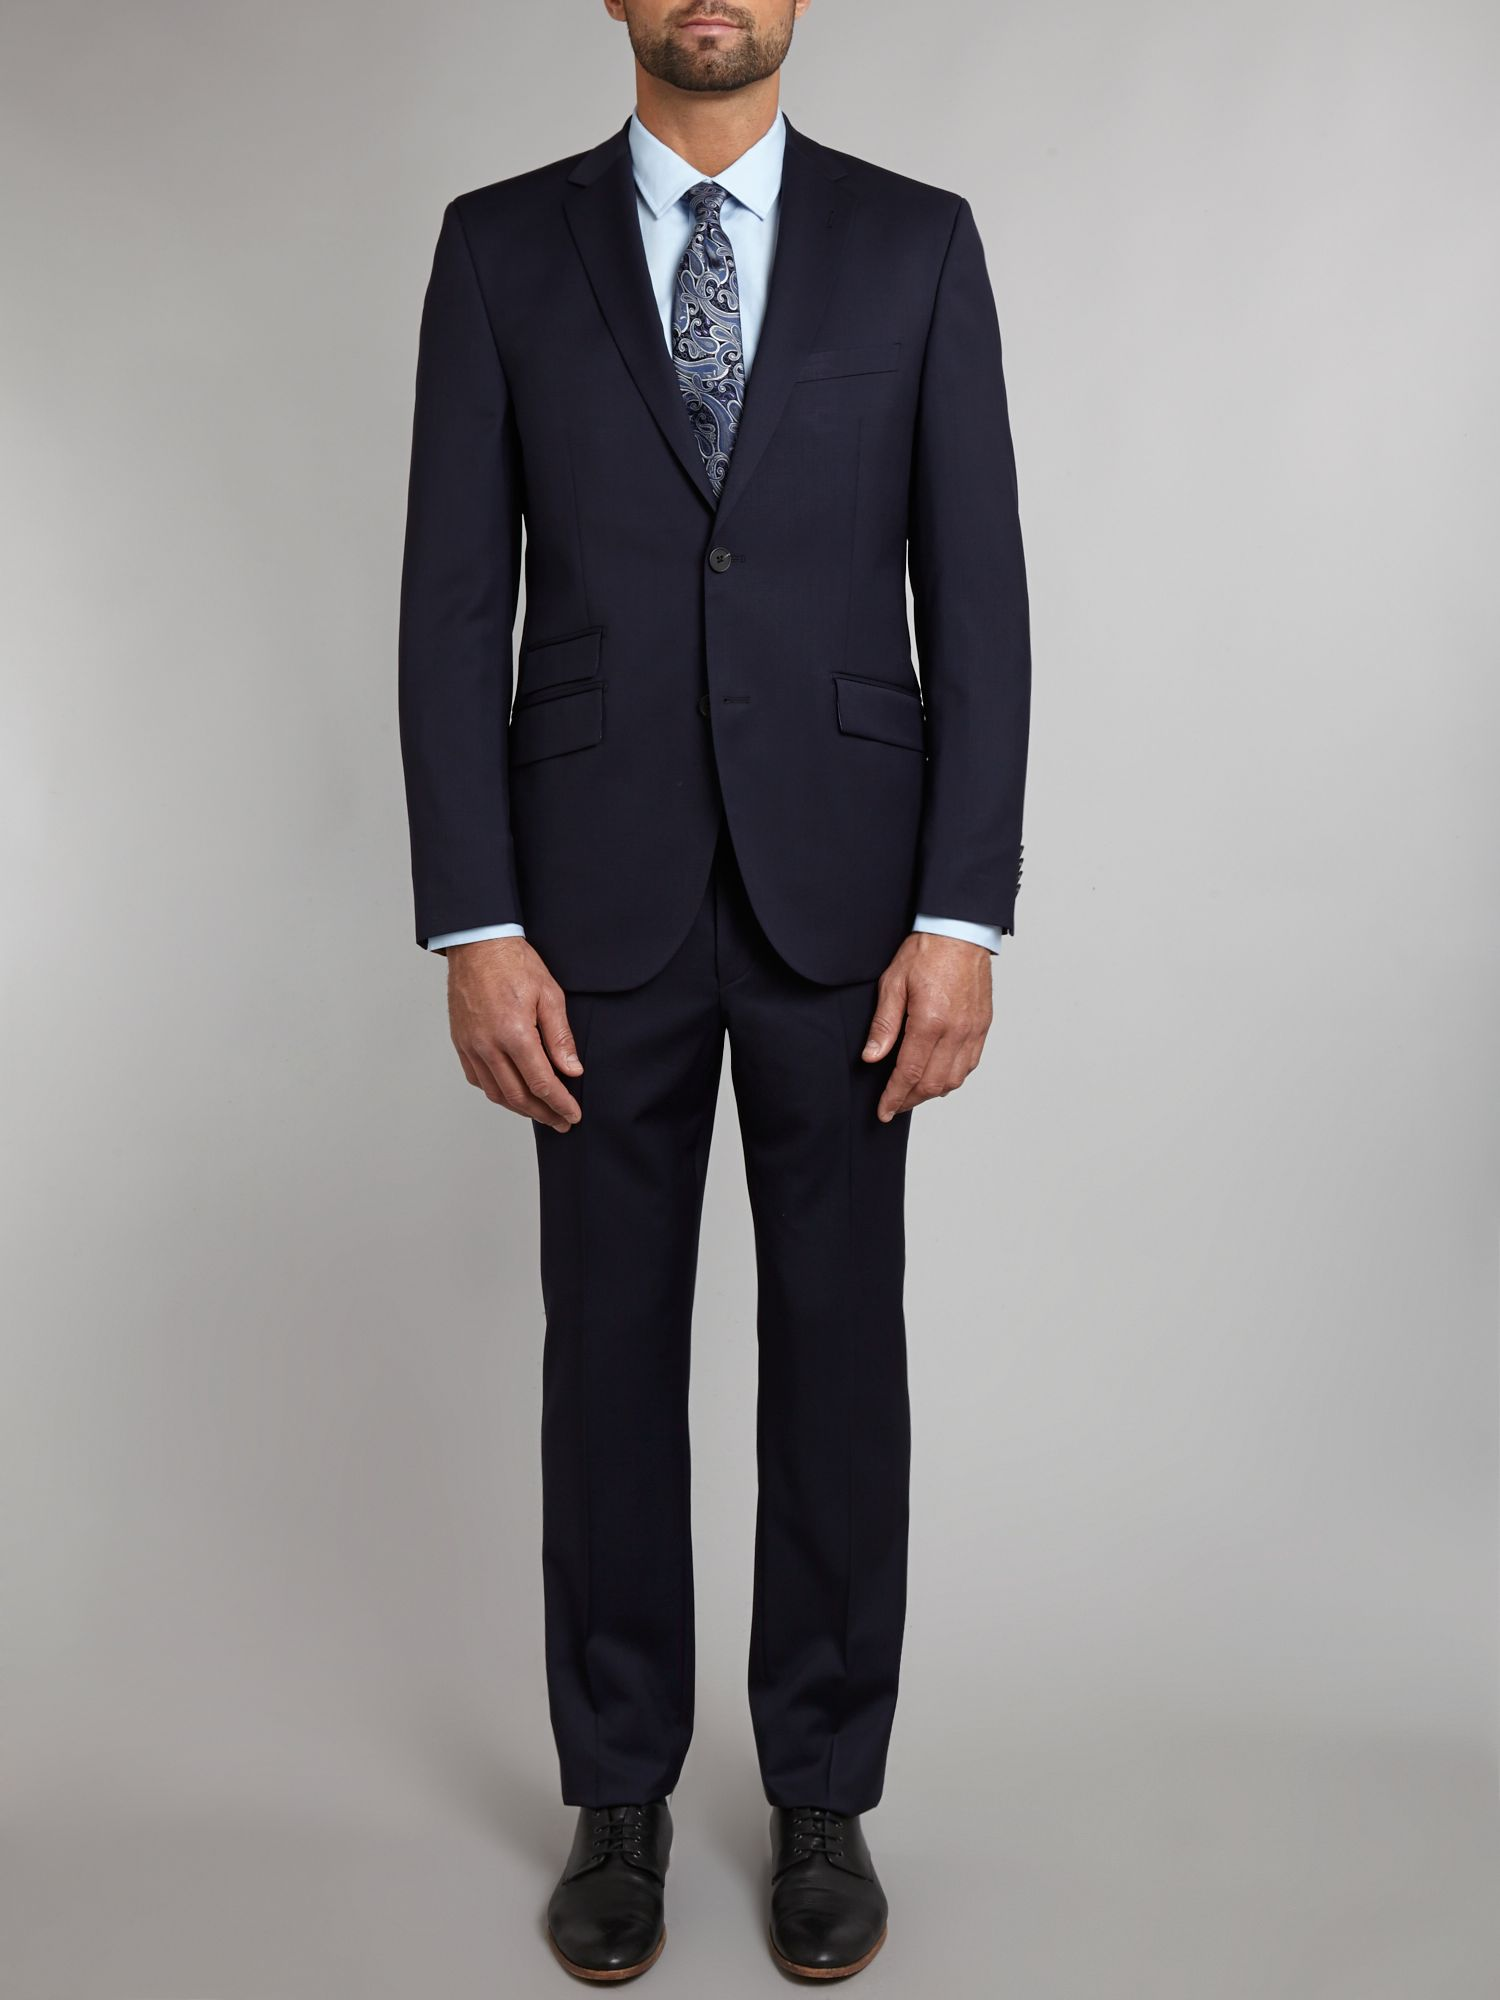 Randolf regular fit suit